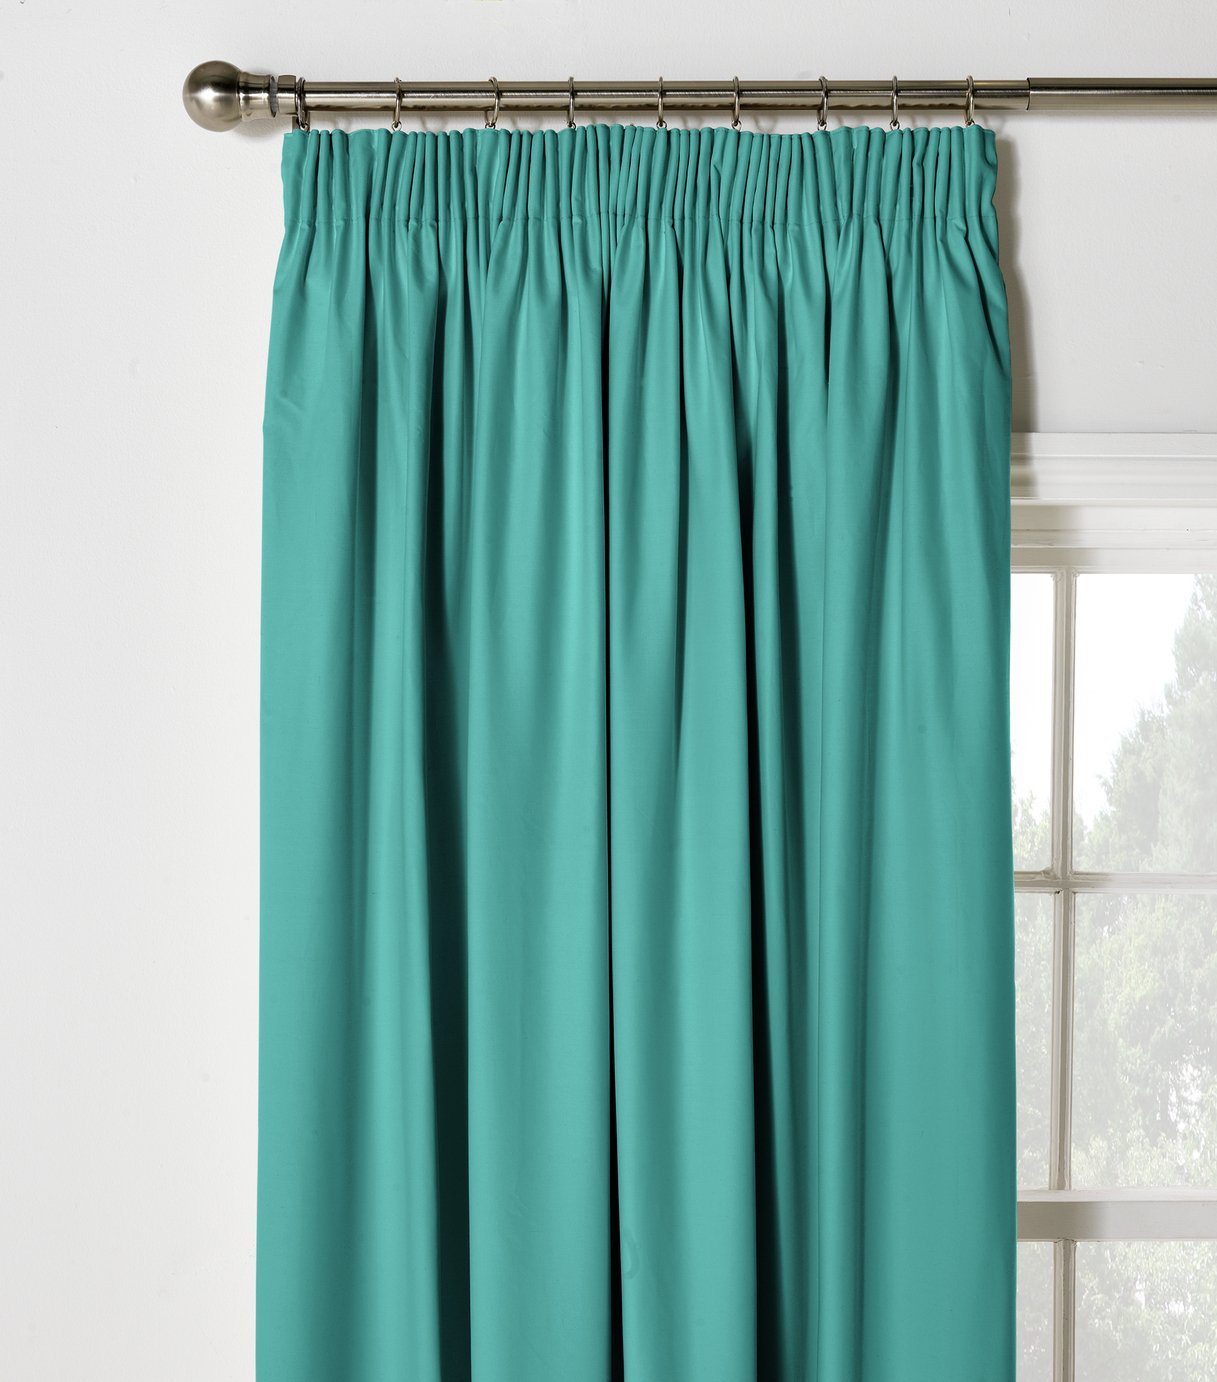 Image of ColourMatch Blackout Pencil Pleat Curtains -117x137cm- Teal